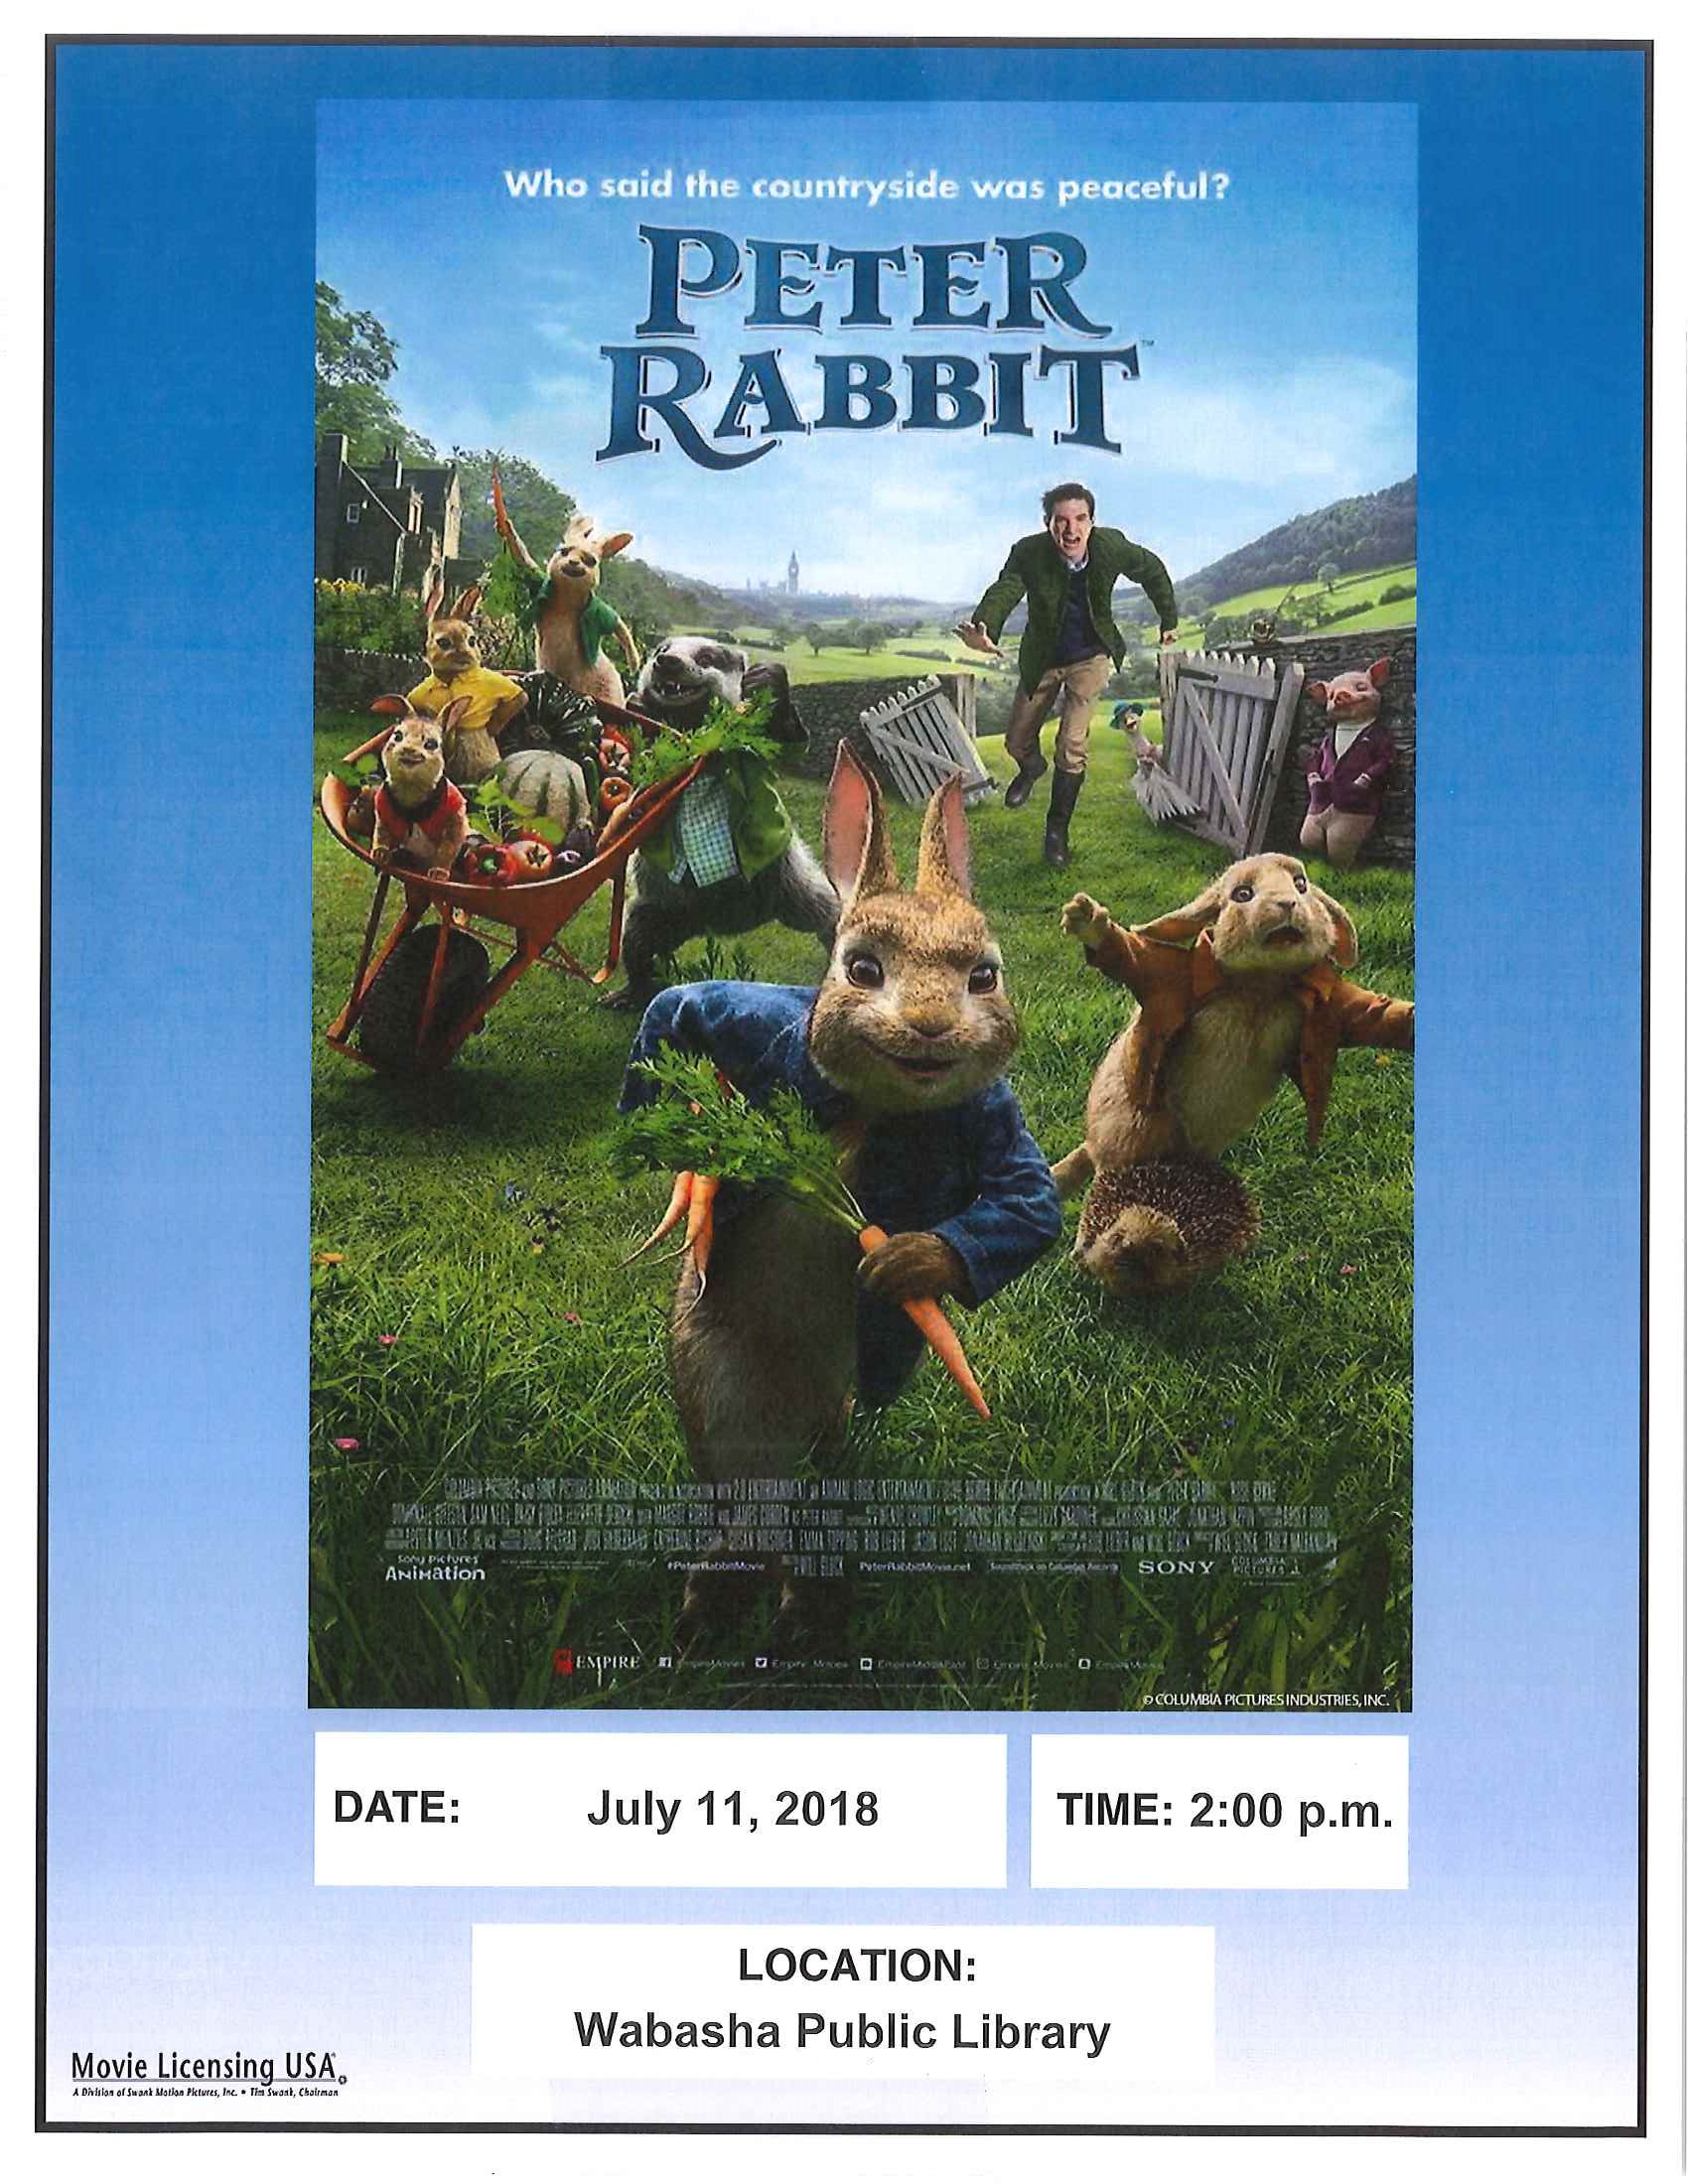 Book To Movie Event In The Children S Library Wabasha Public Library